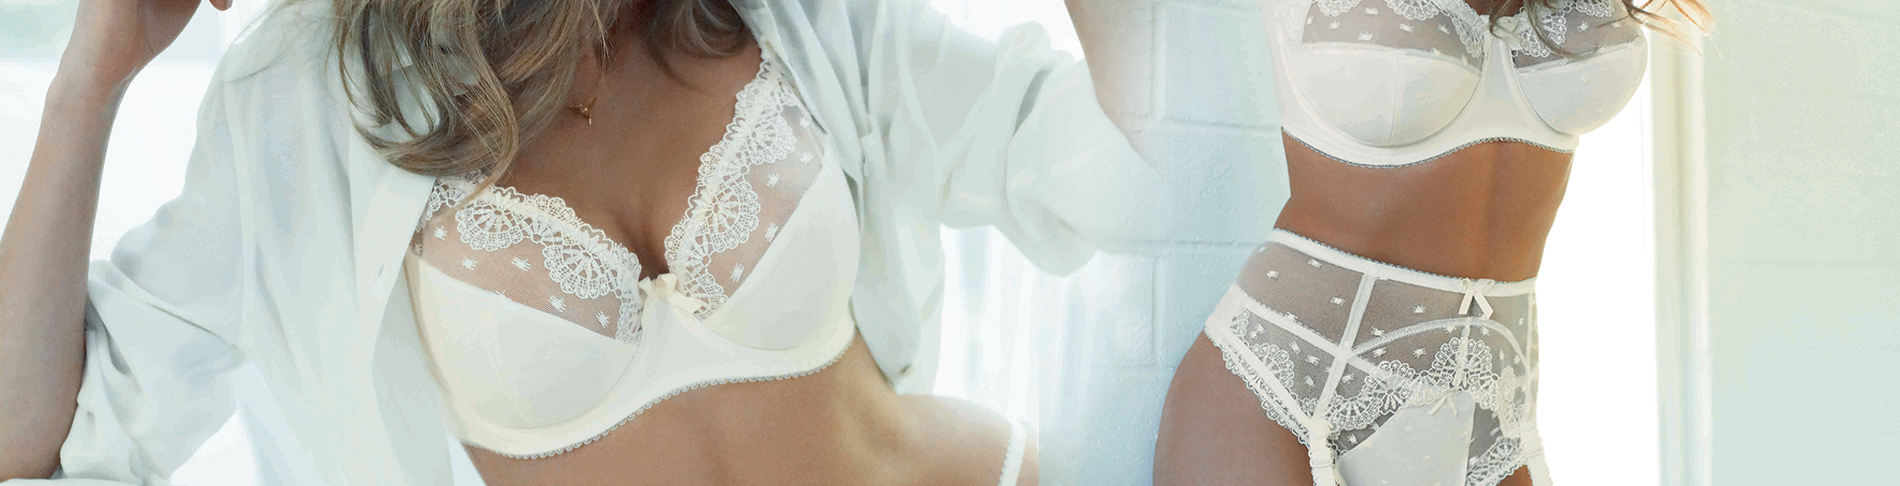 belle lingerie bridal lingerie buying guide